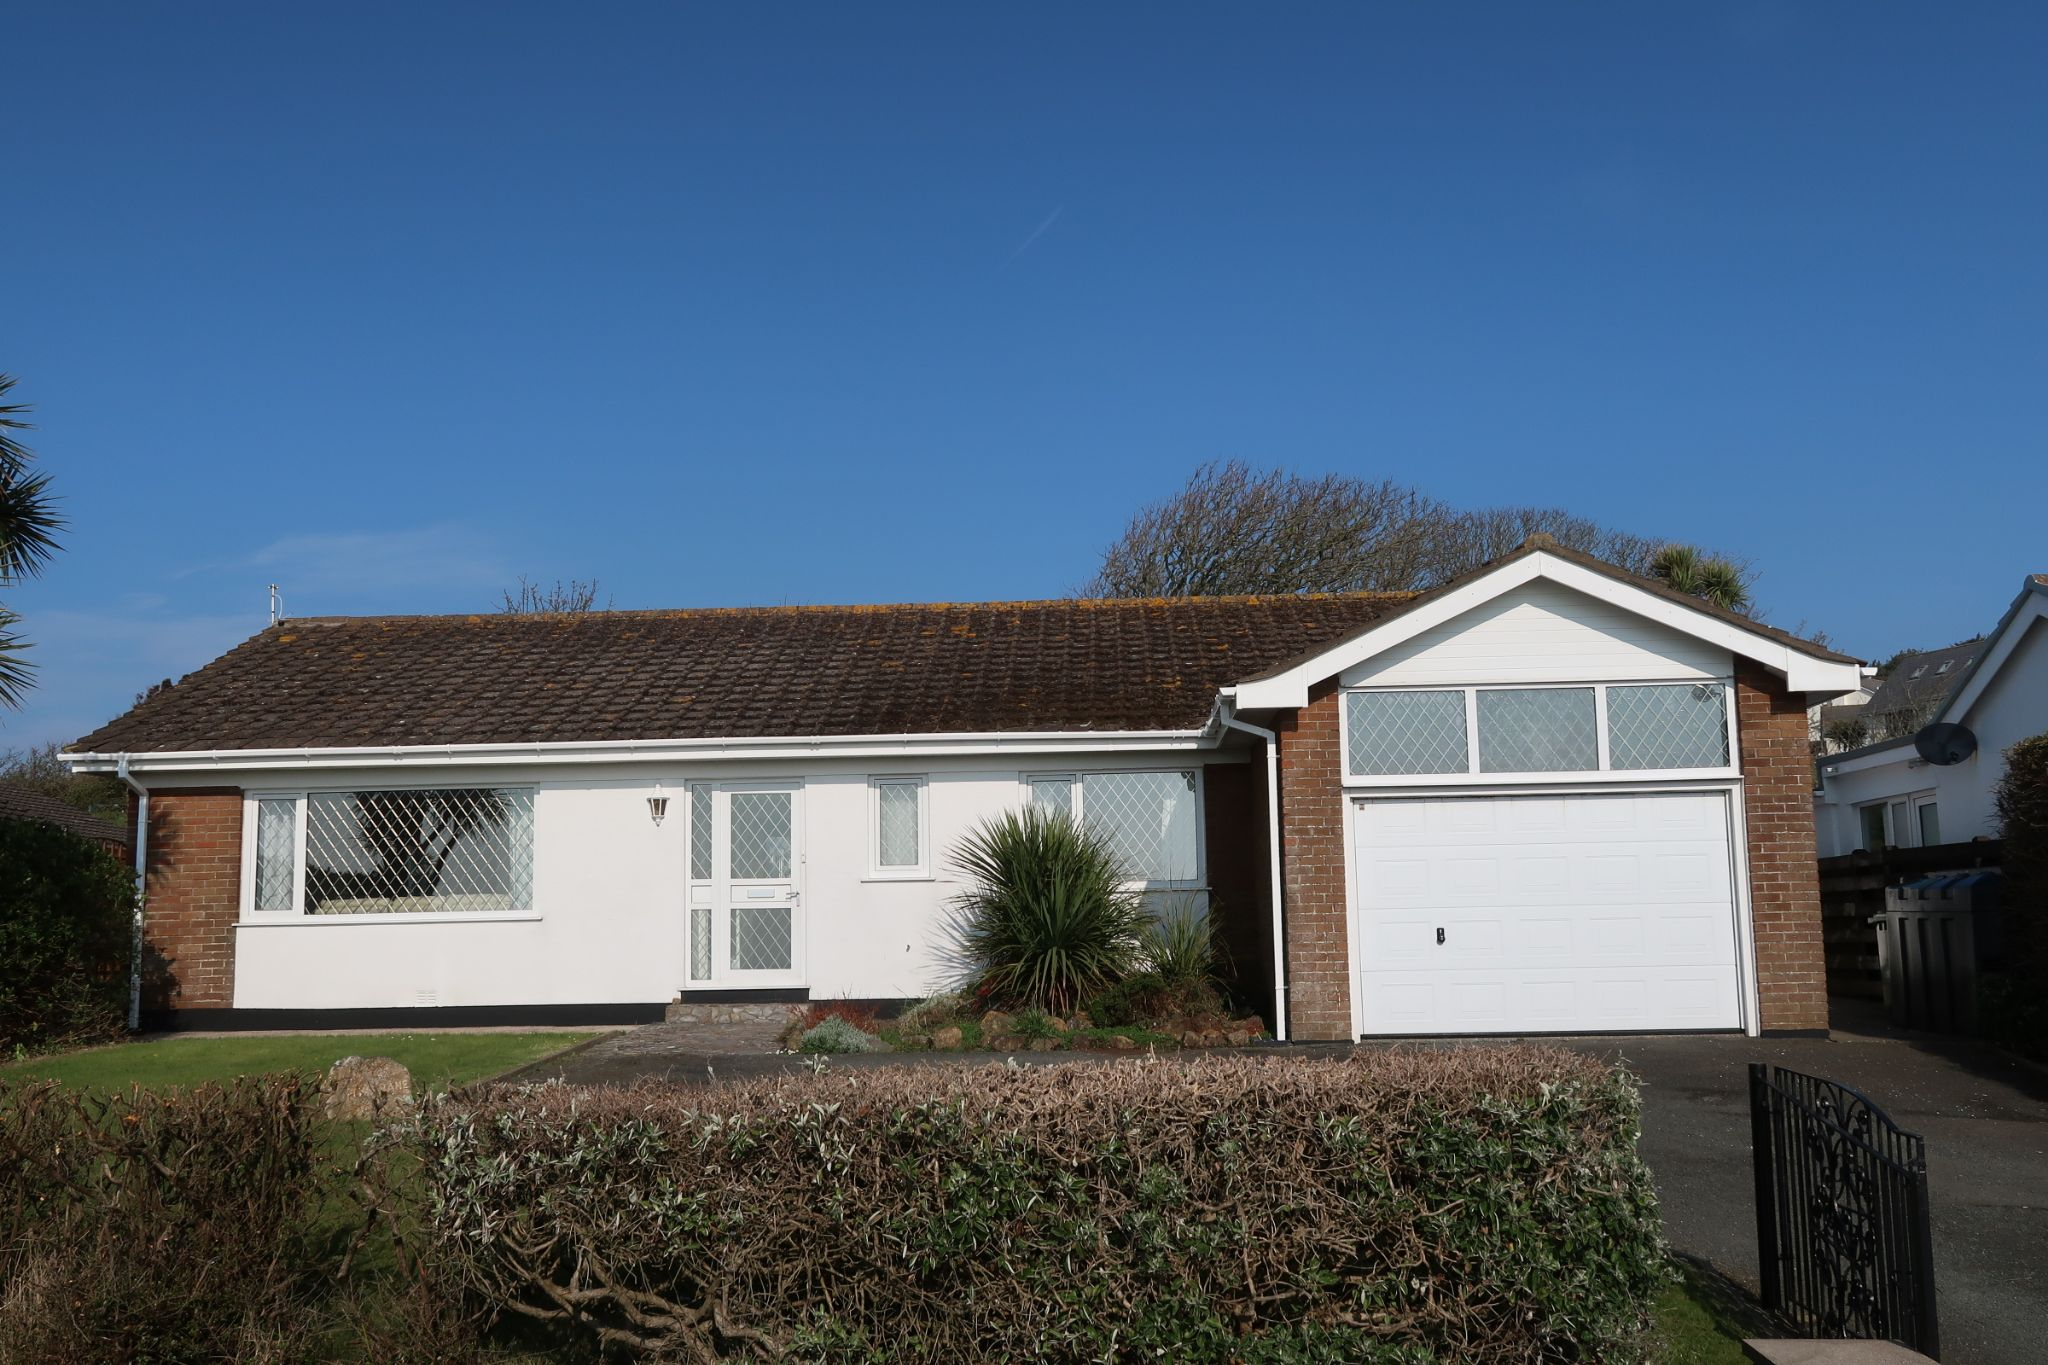 3 bedroom detached bungalow Sold in Port St. Mary - Photograph 1